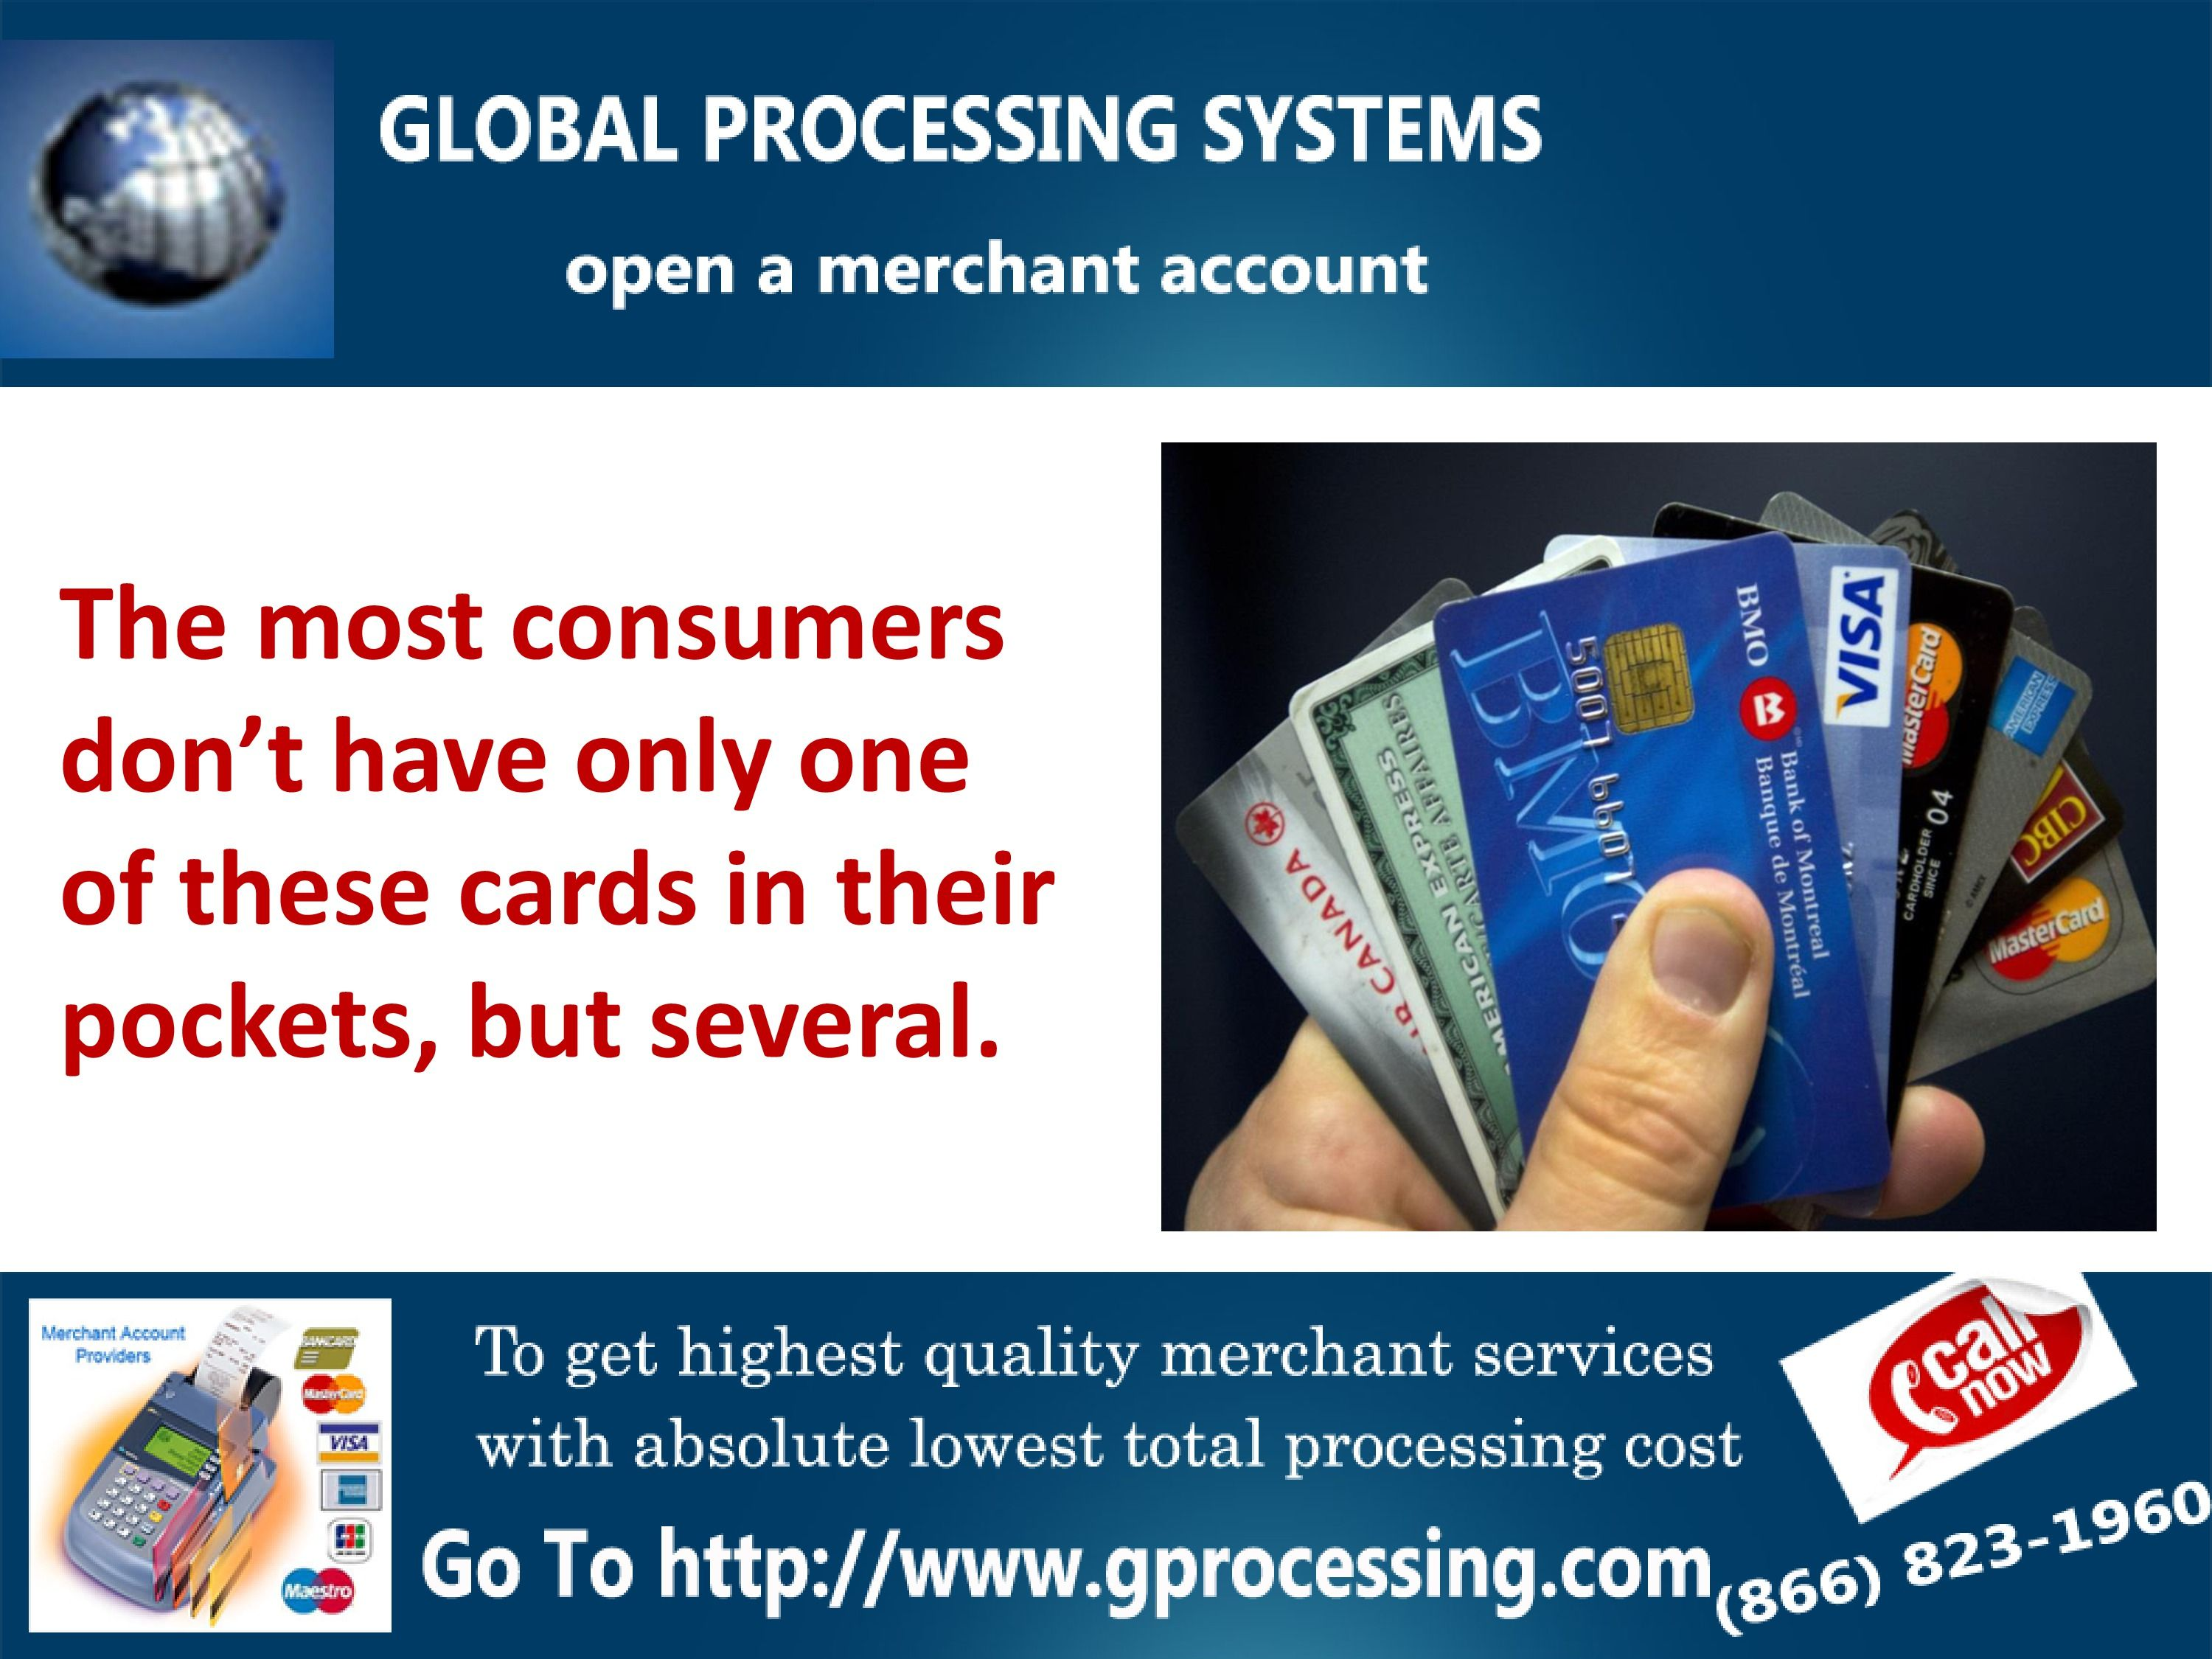 Do you accept only credit card or debit card at your